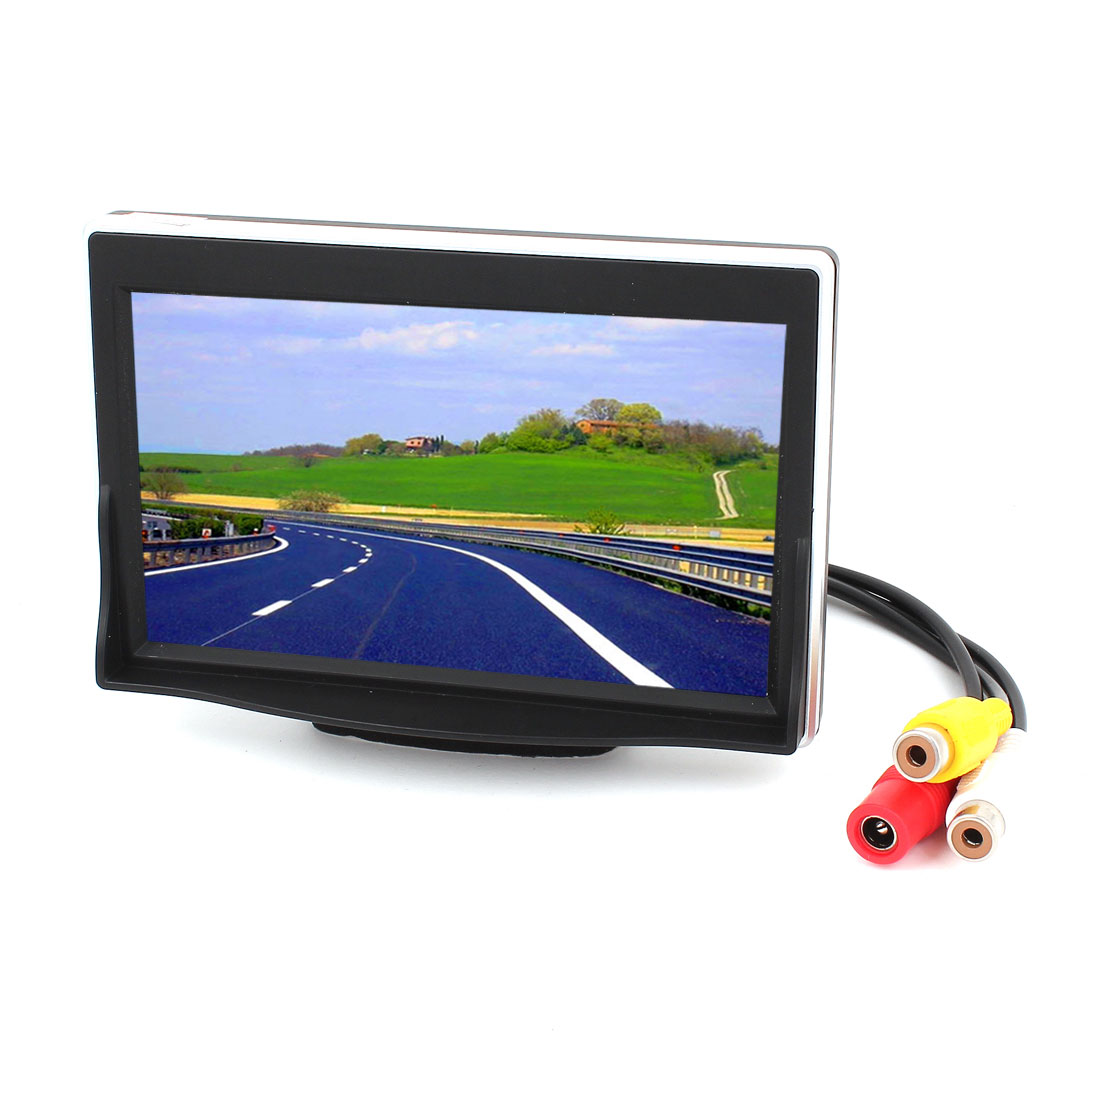 Unique Bargains LCD Car Rear View Camera Monitor Rotating Screen 2 AV Inputs 5 inch TFT Color